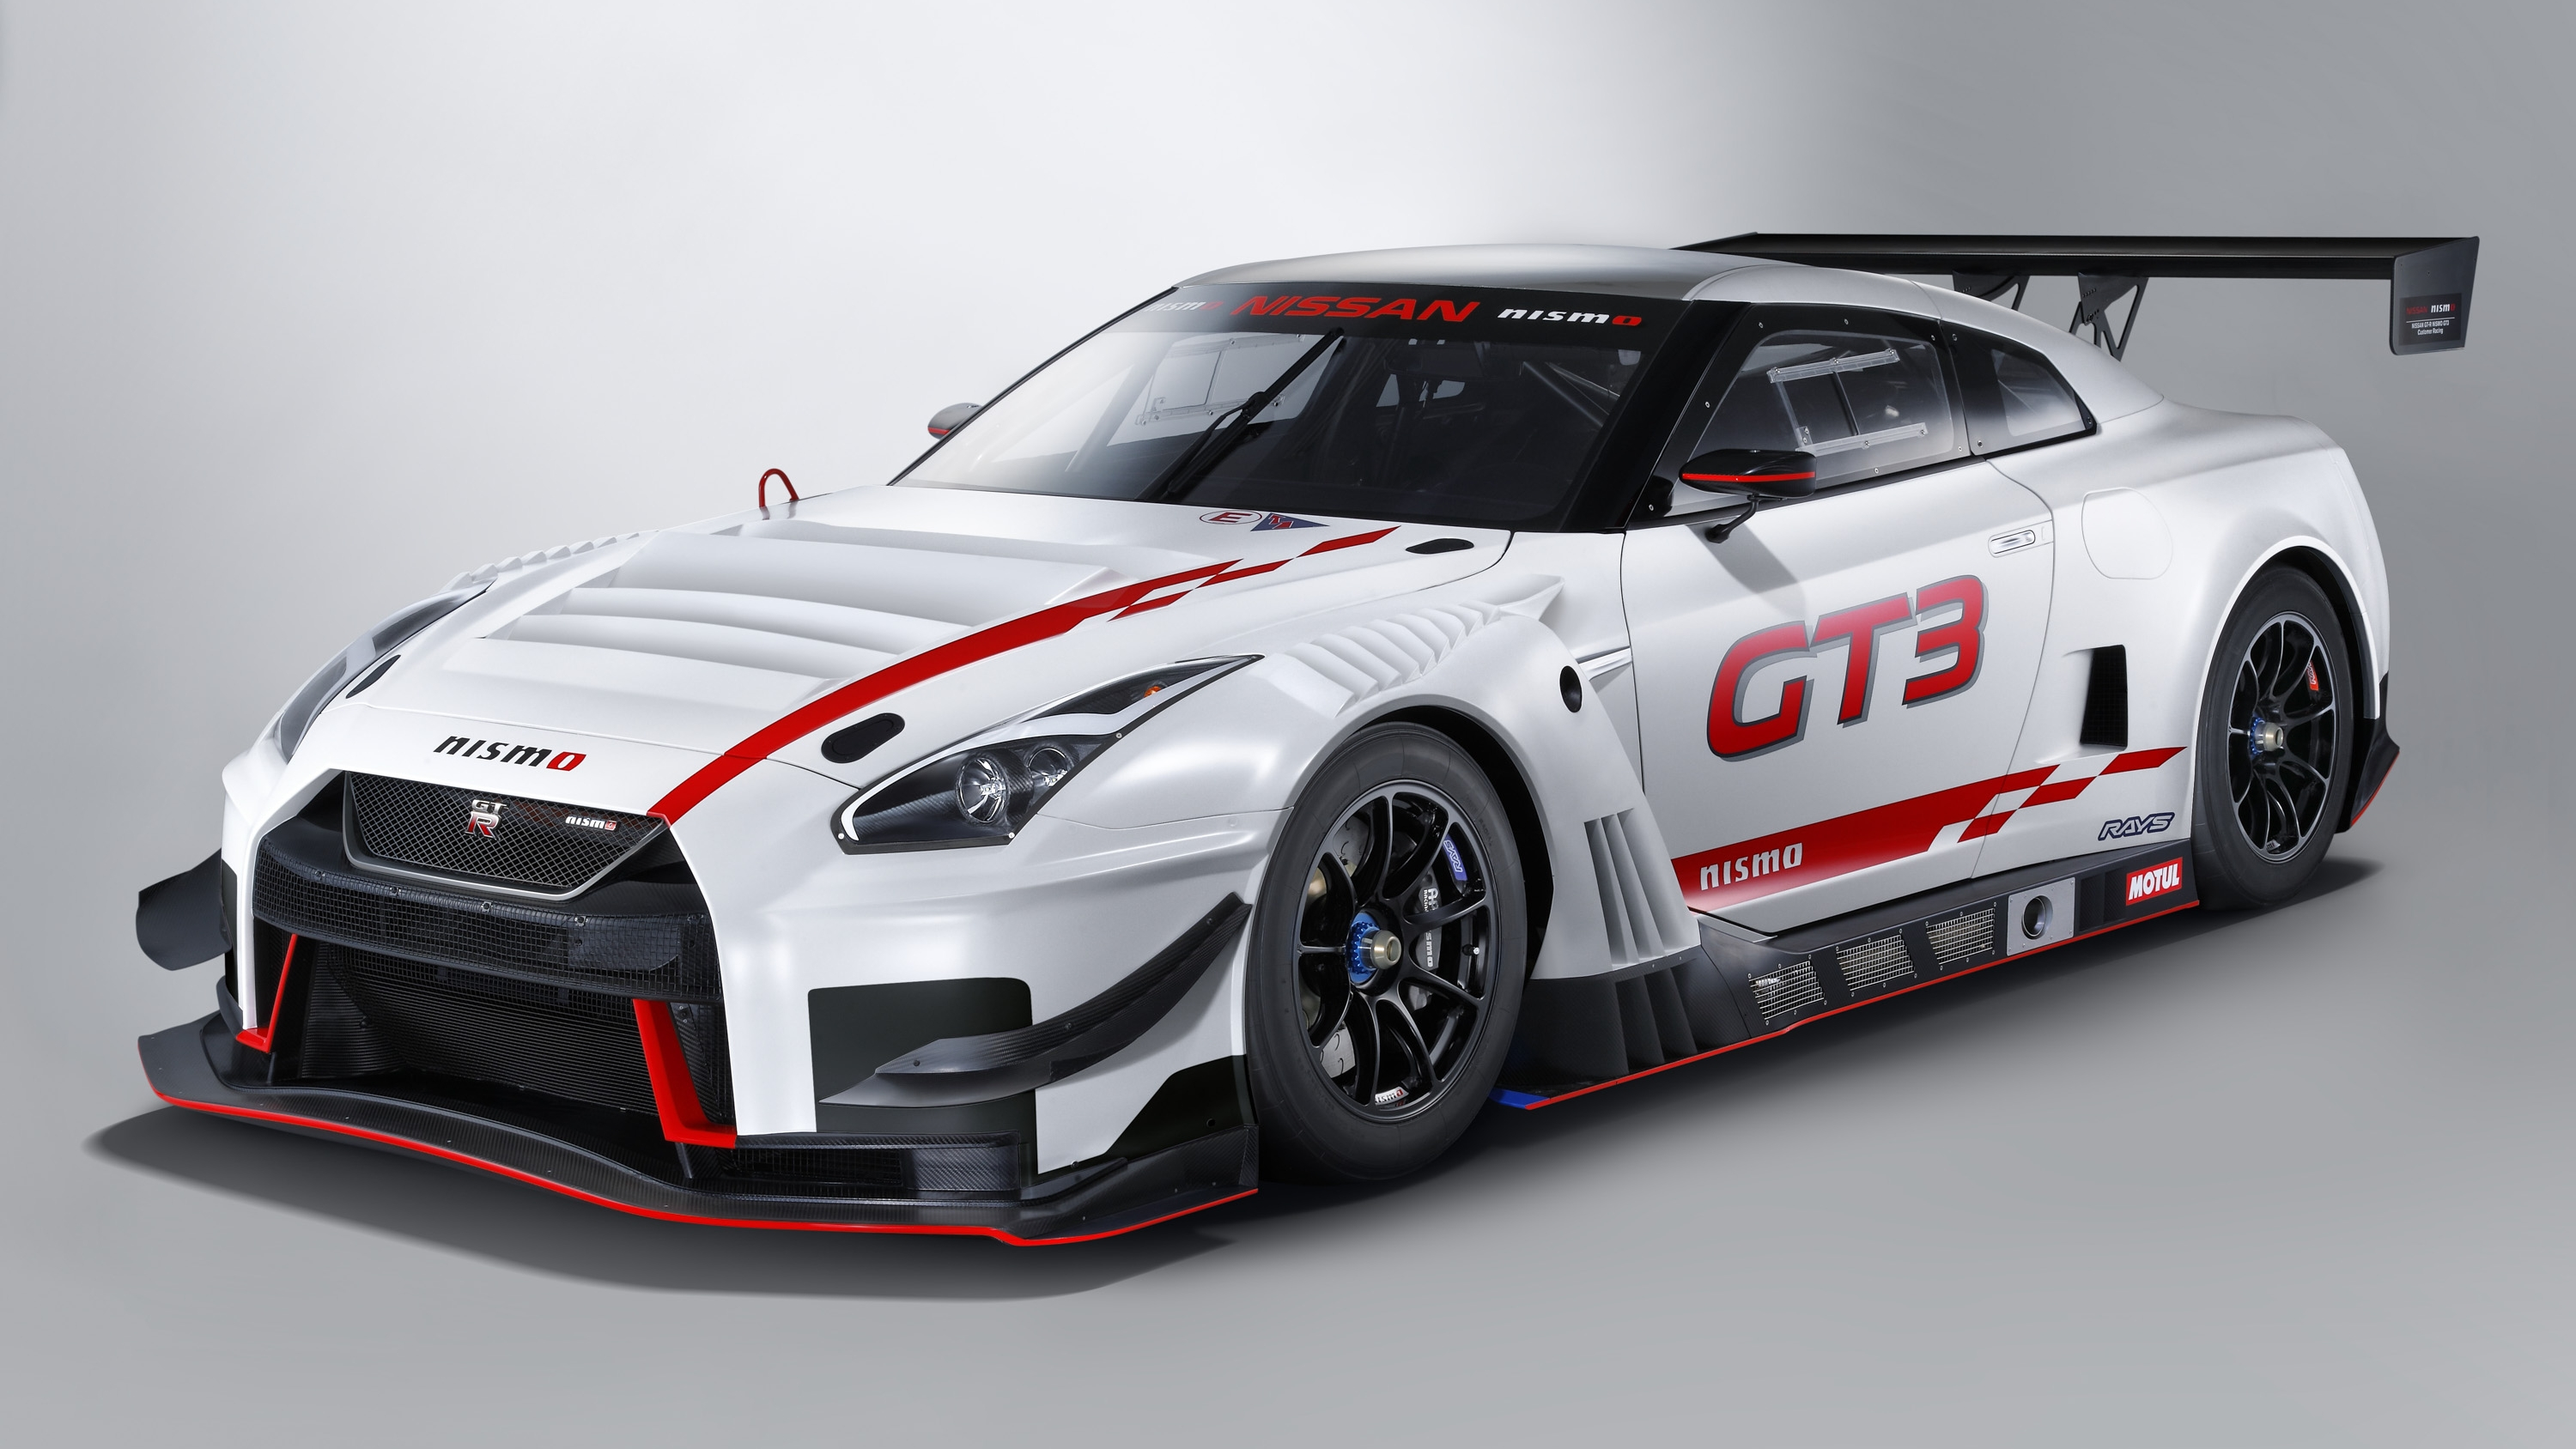 2019 nissan gt r nismo gt3 top speed. Black Bedroom Furniture Sets. Home Design Ideas